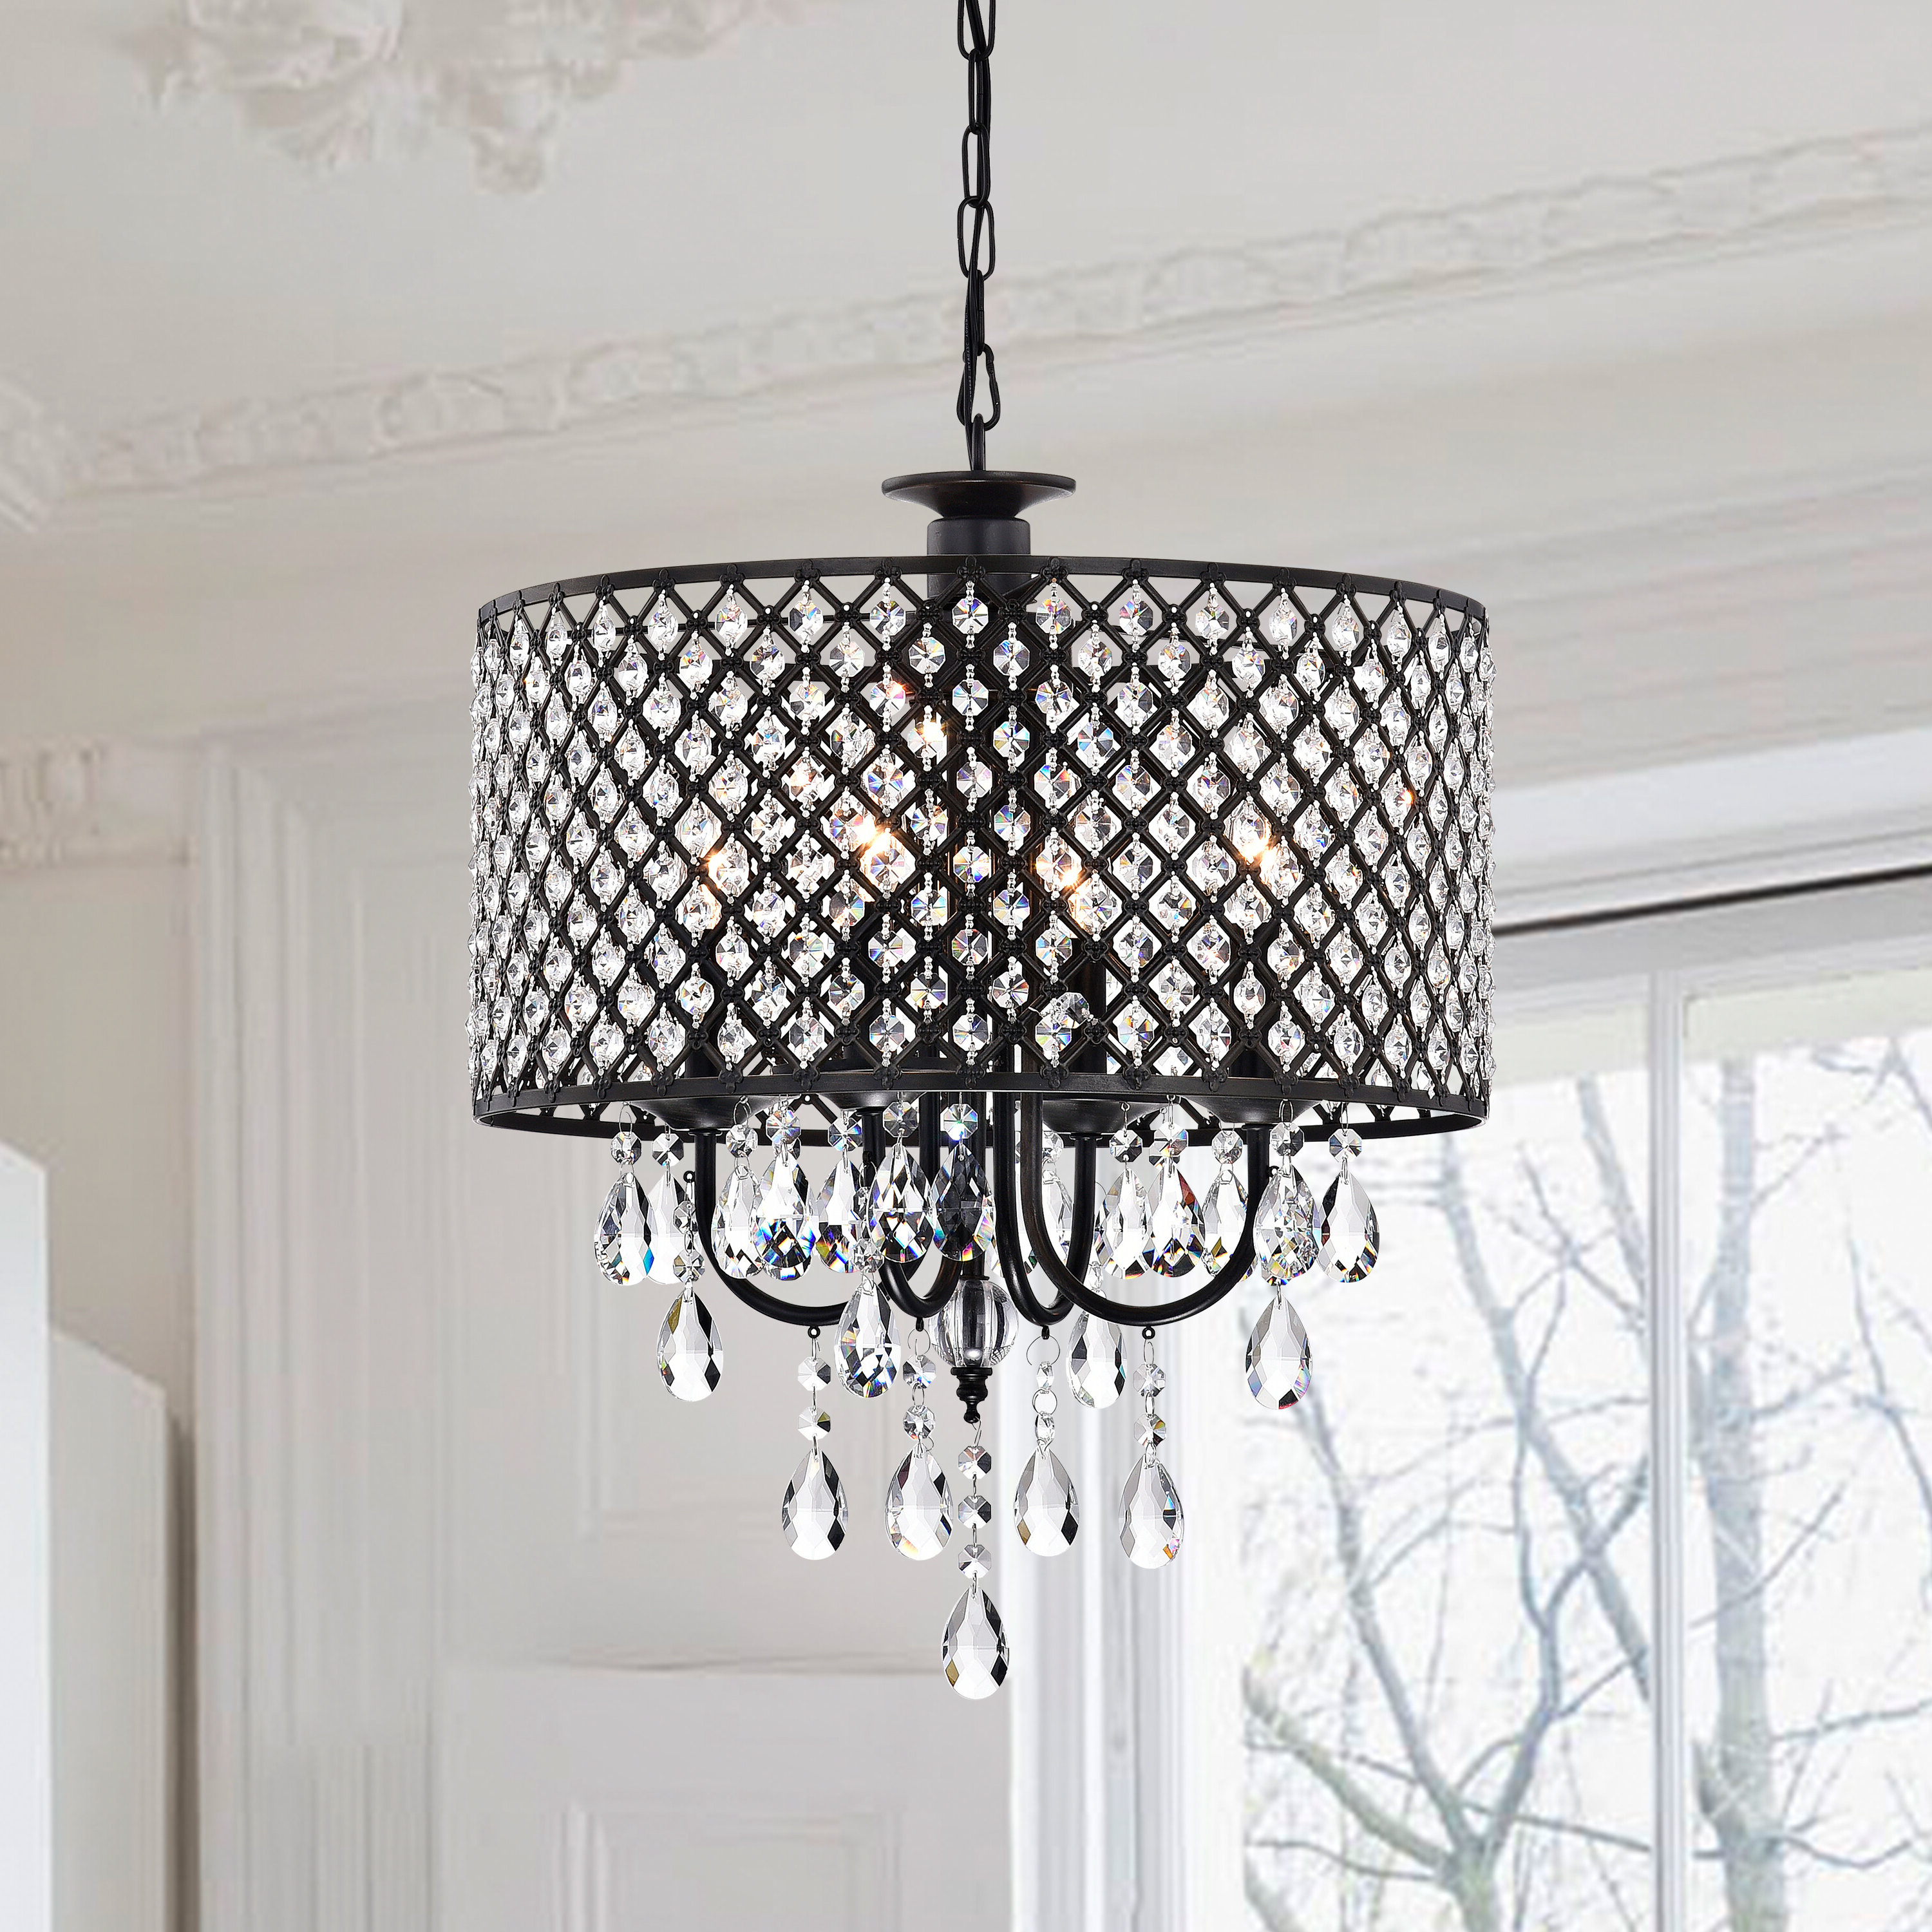 Widely Used Sinead 4 Light Chandeliers Inside Gisselle 4 Light Drum Chandelier (View 24 of 25)